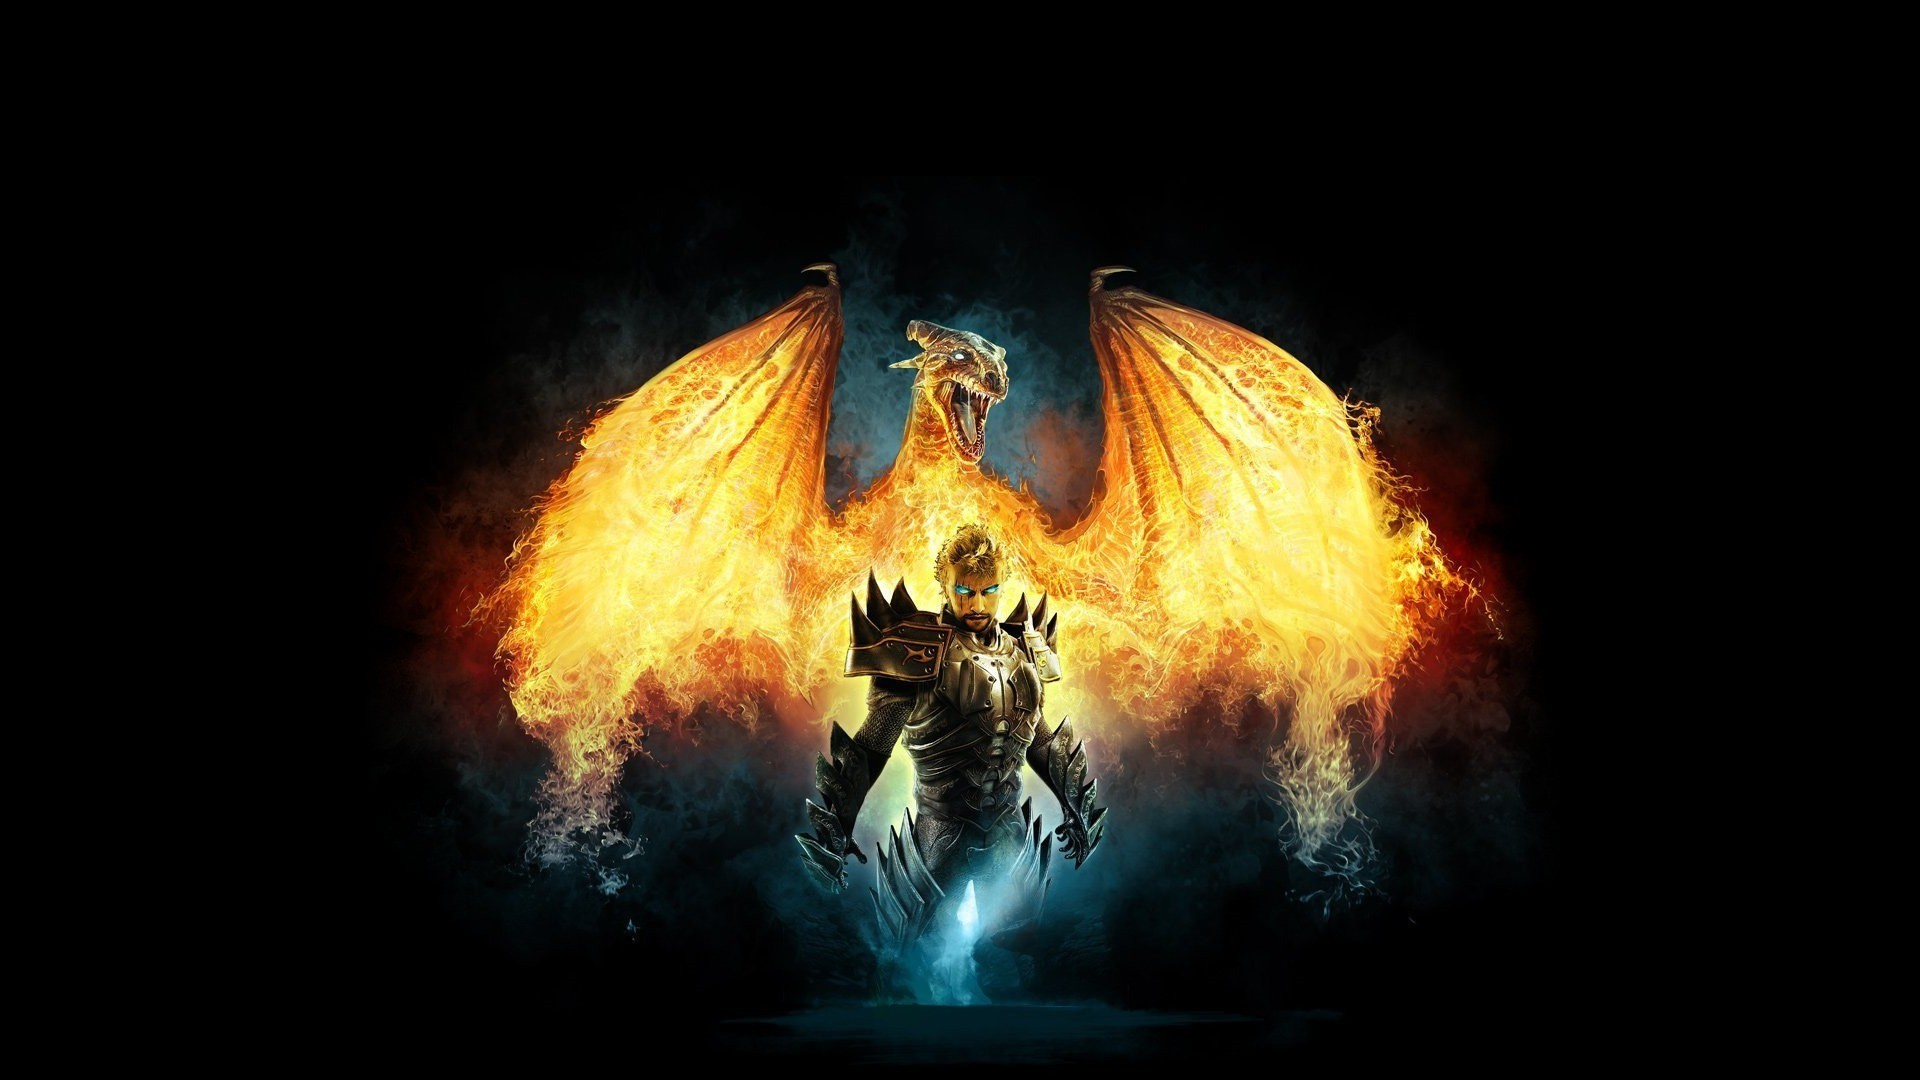 15119 download wallpaper Fantasy, Dragons, Fire screensavers and pictures for free